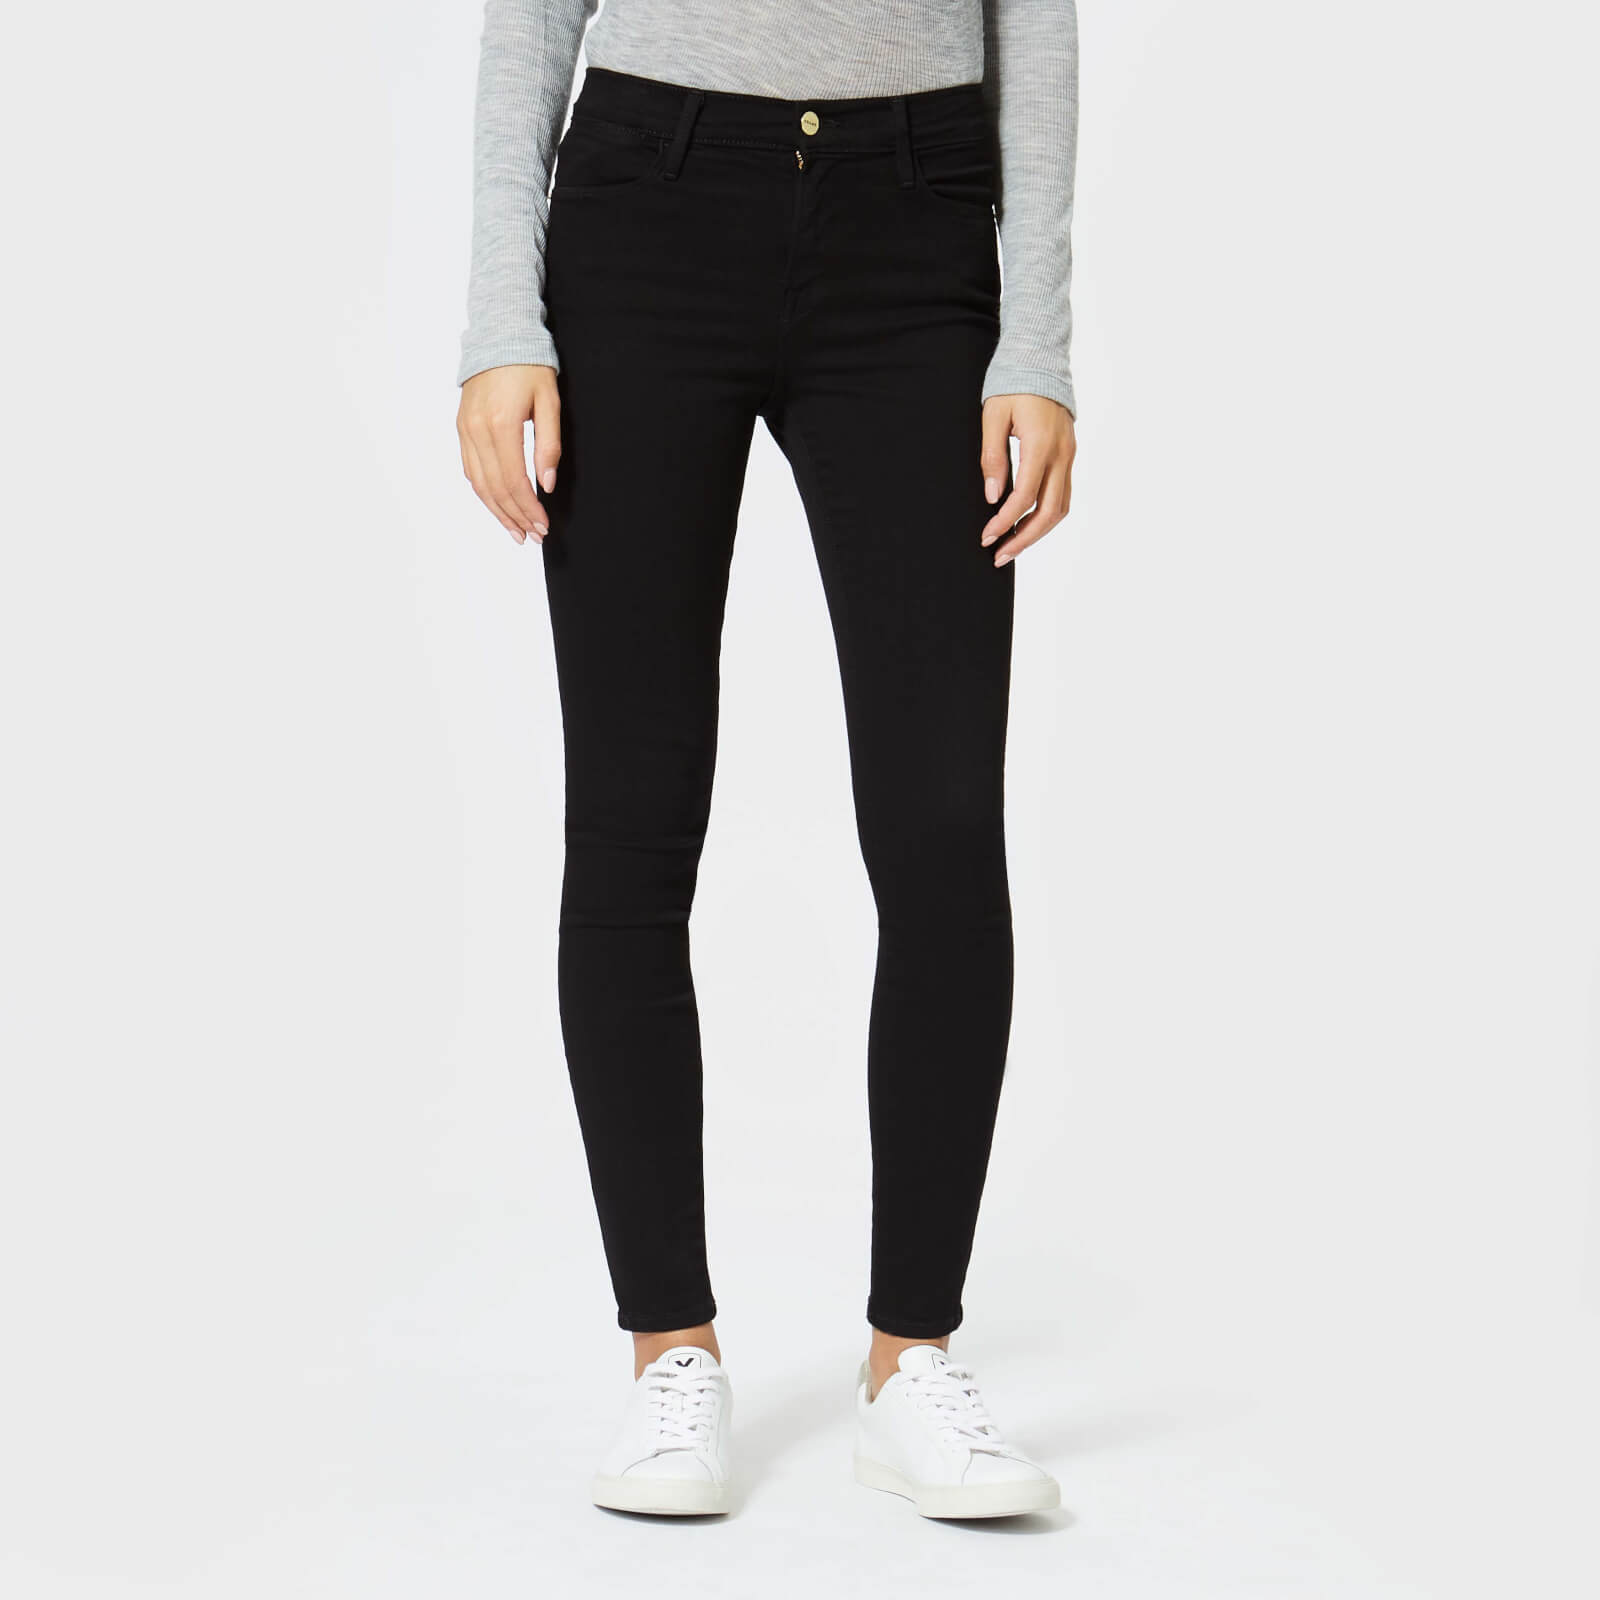 8e915ca330f Frame Women s Le High Skinny Jeans - Film Noir - Free UK Delivery over £50